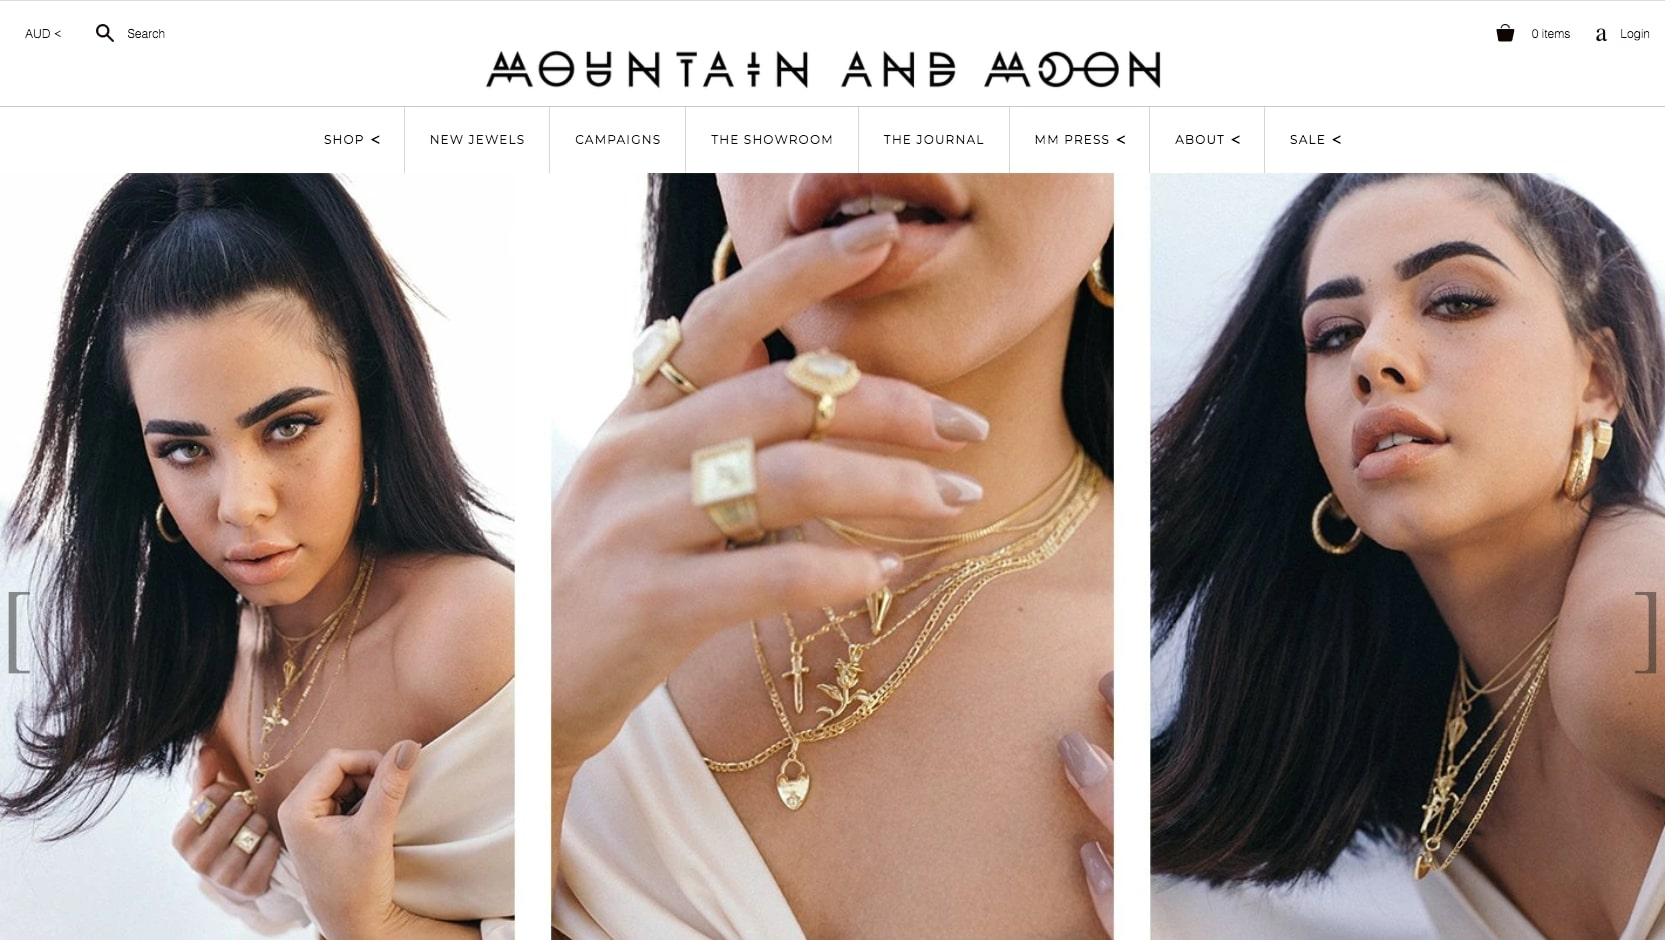 Mountain and Moon website home page